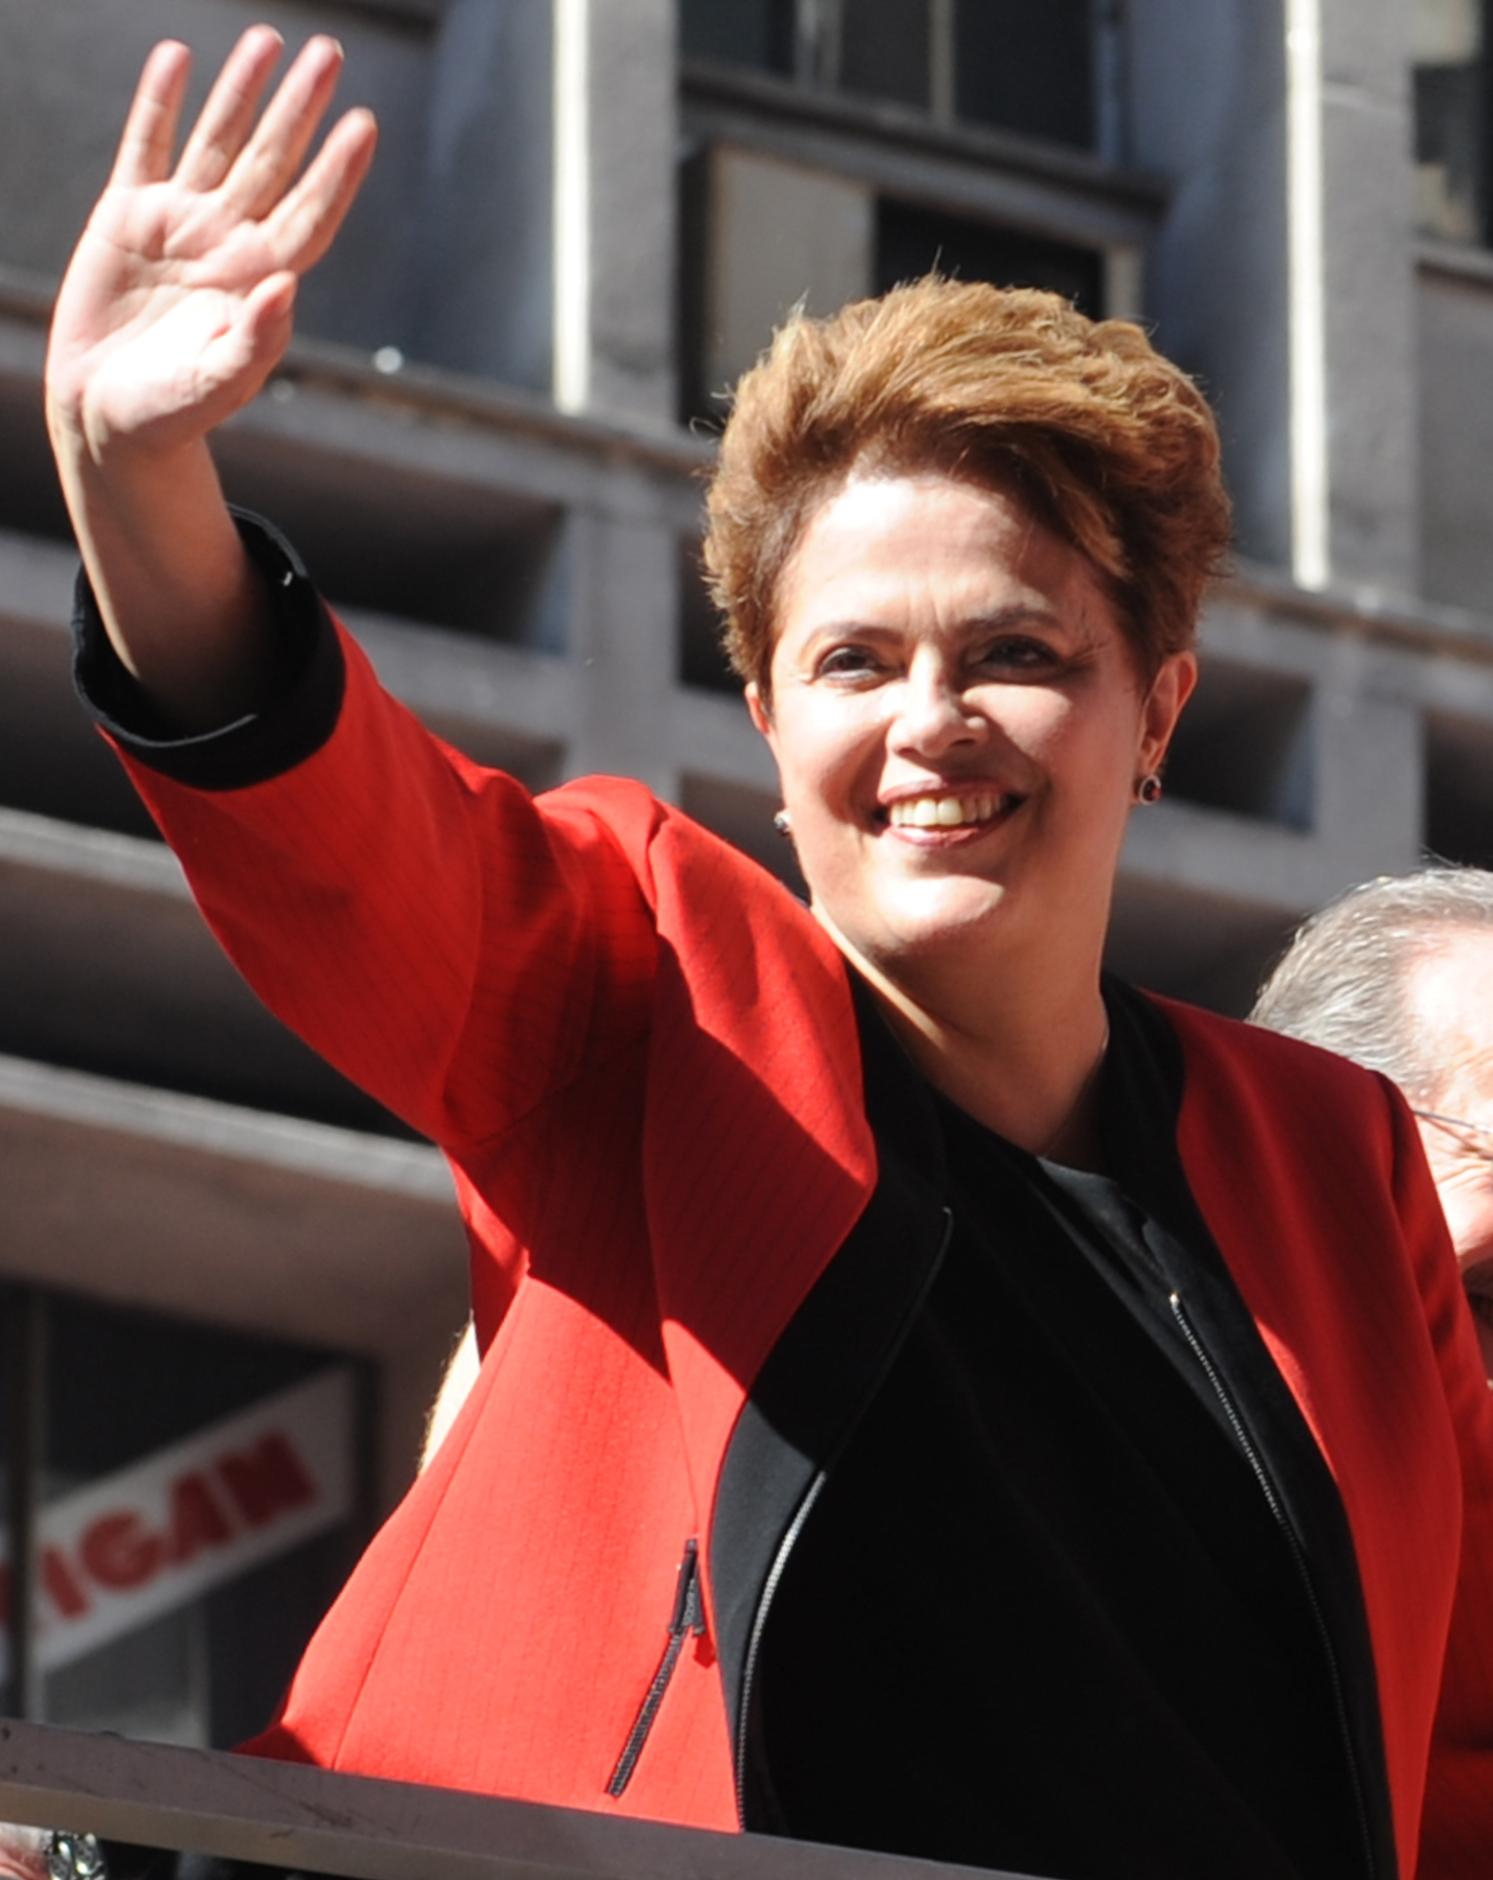 Dilma Rousseff on the campaign trail